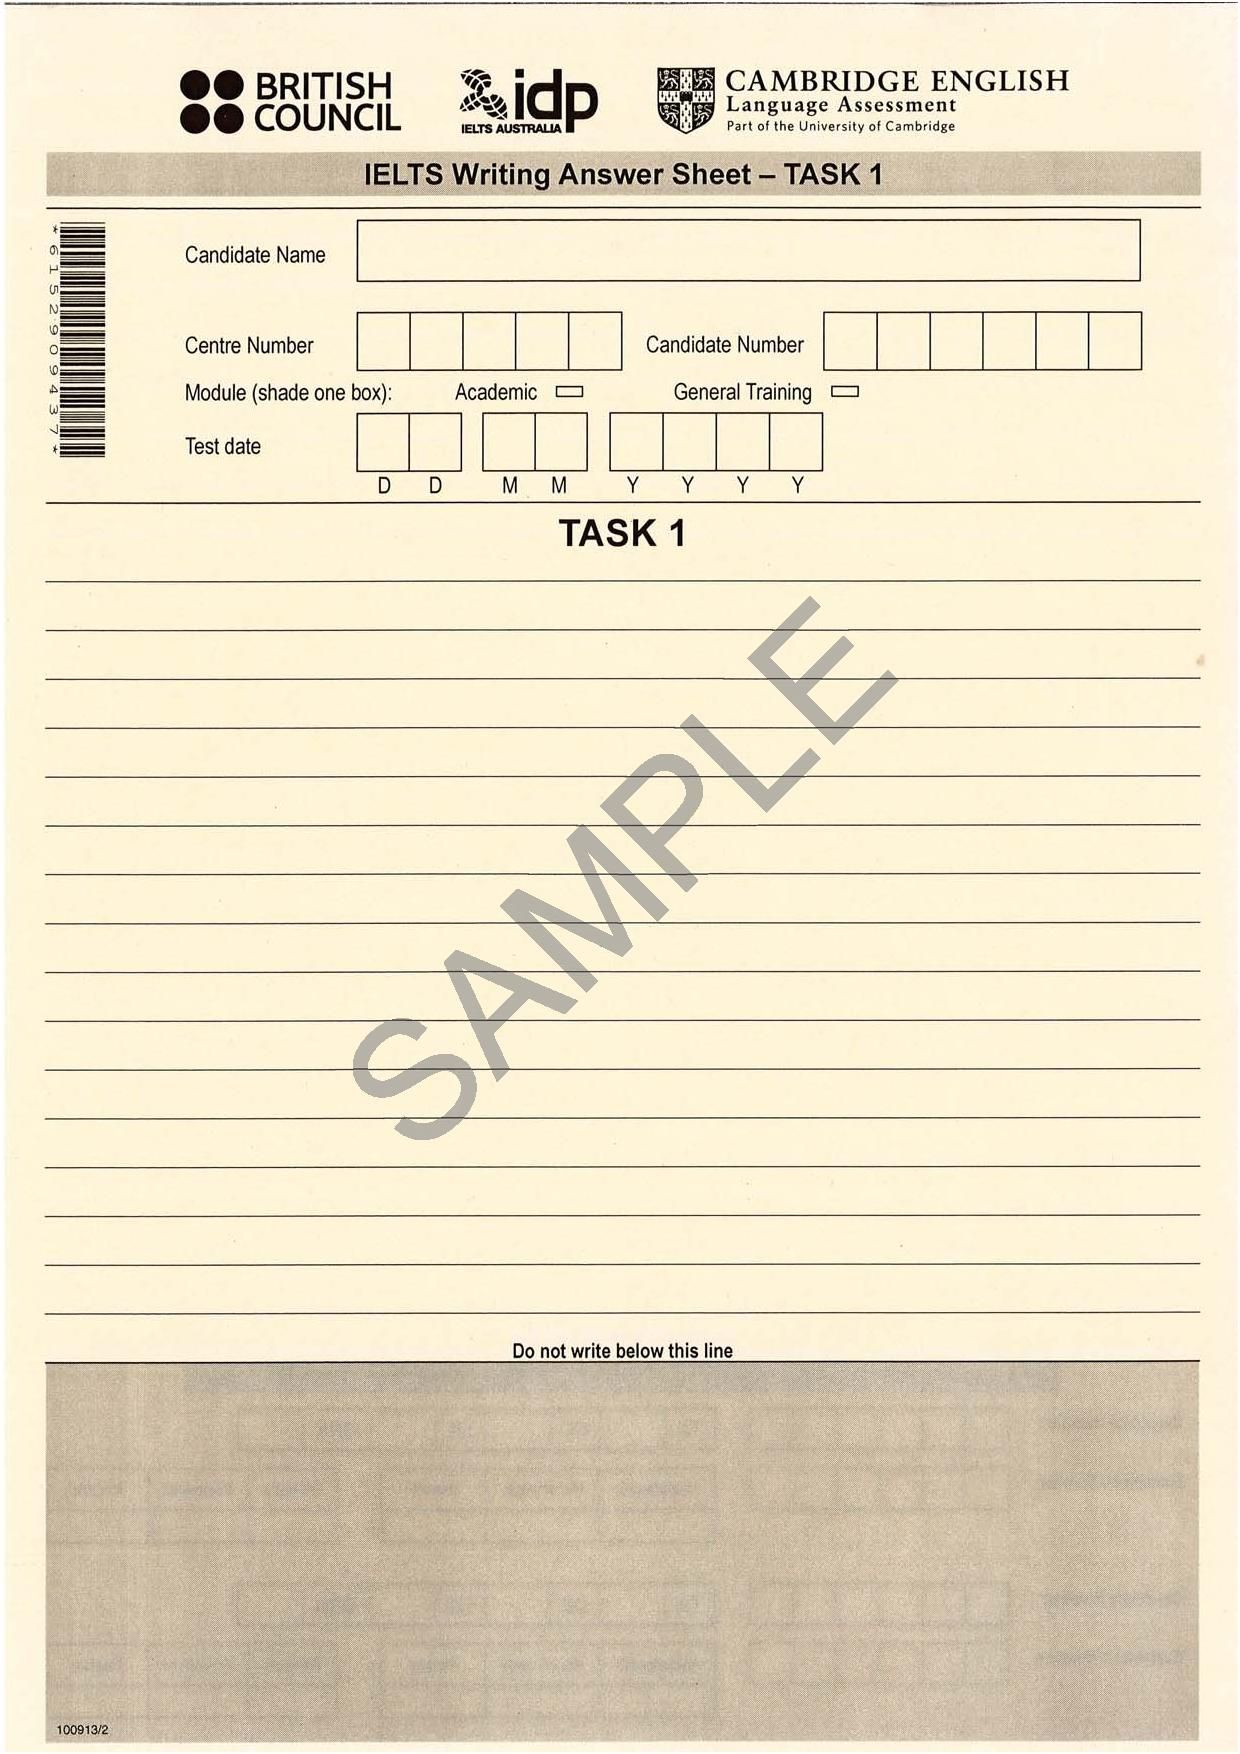 ielts writing task 1 answer sheet front ielts writing ielts writing task 1 answer sheet front